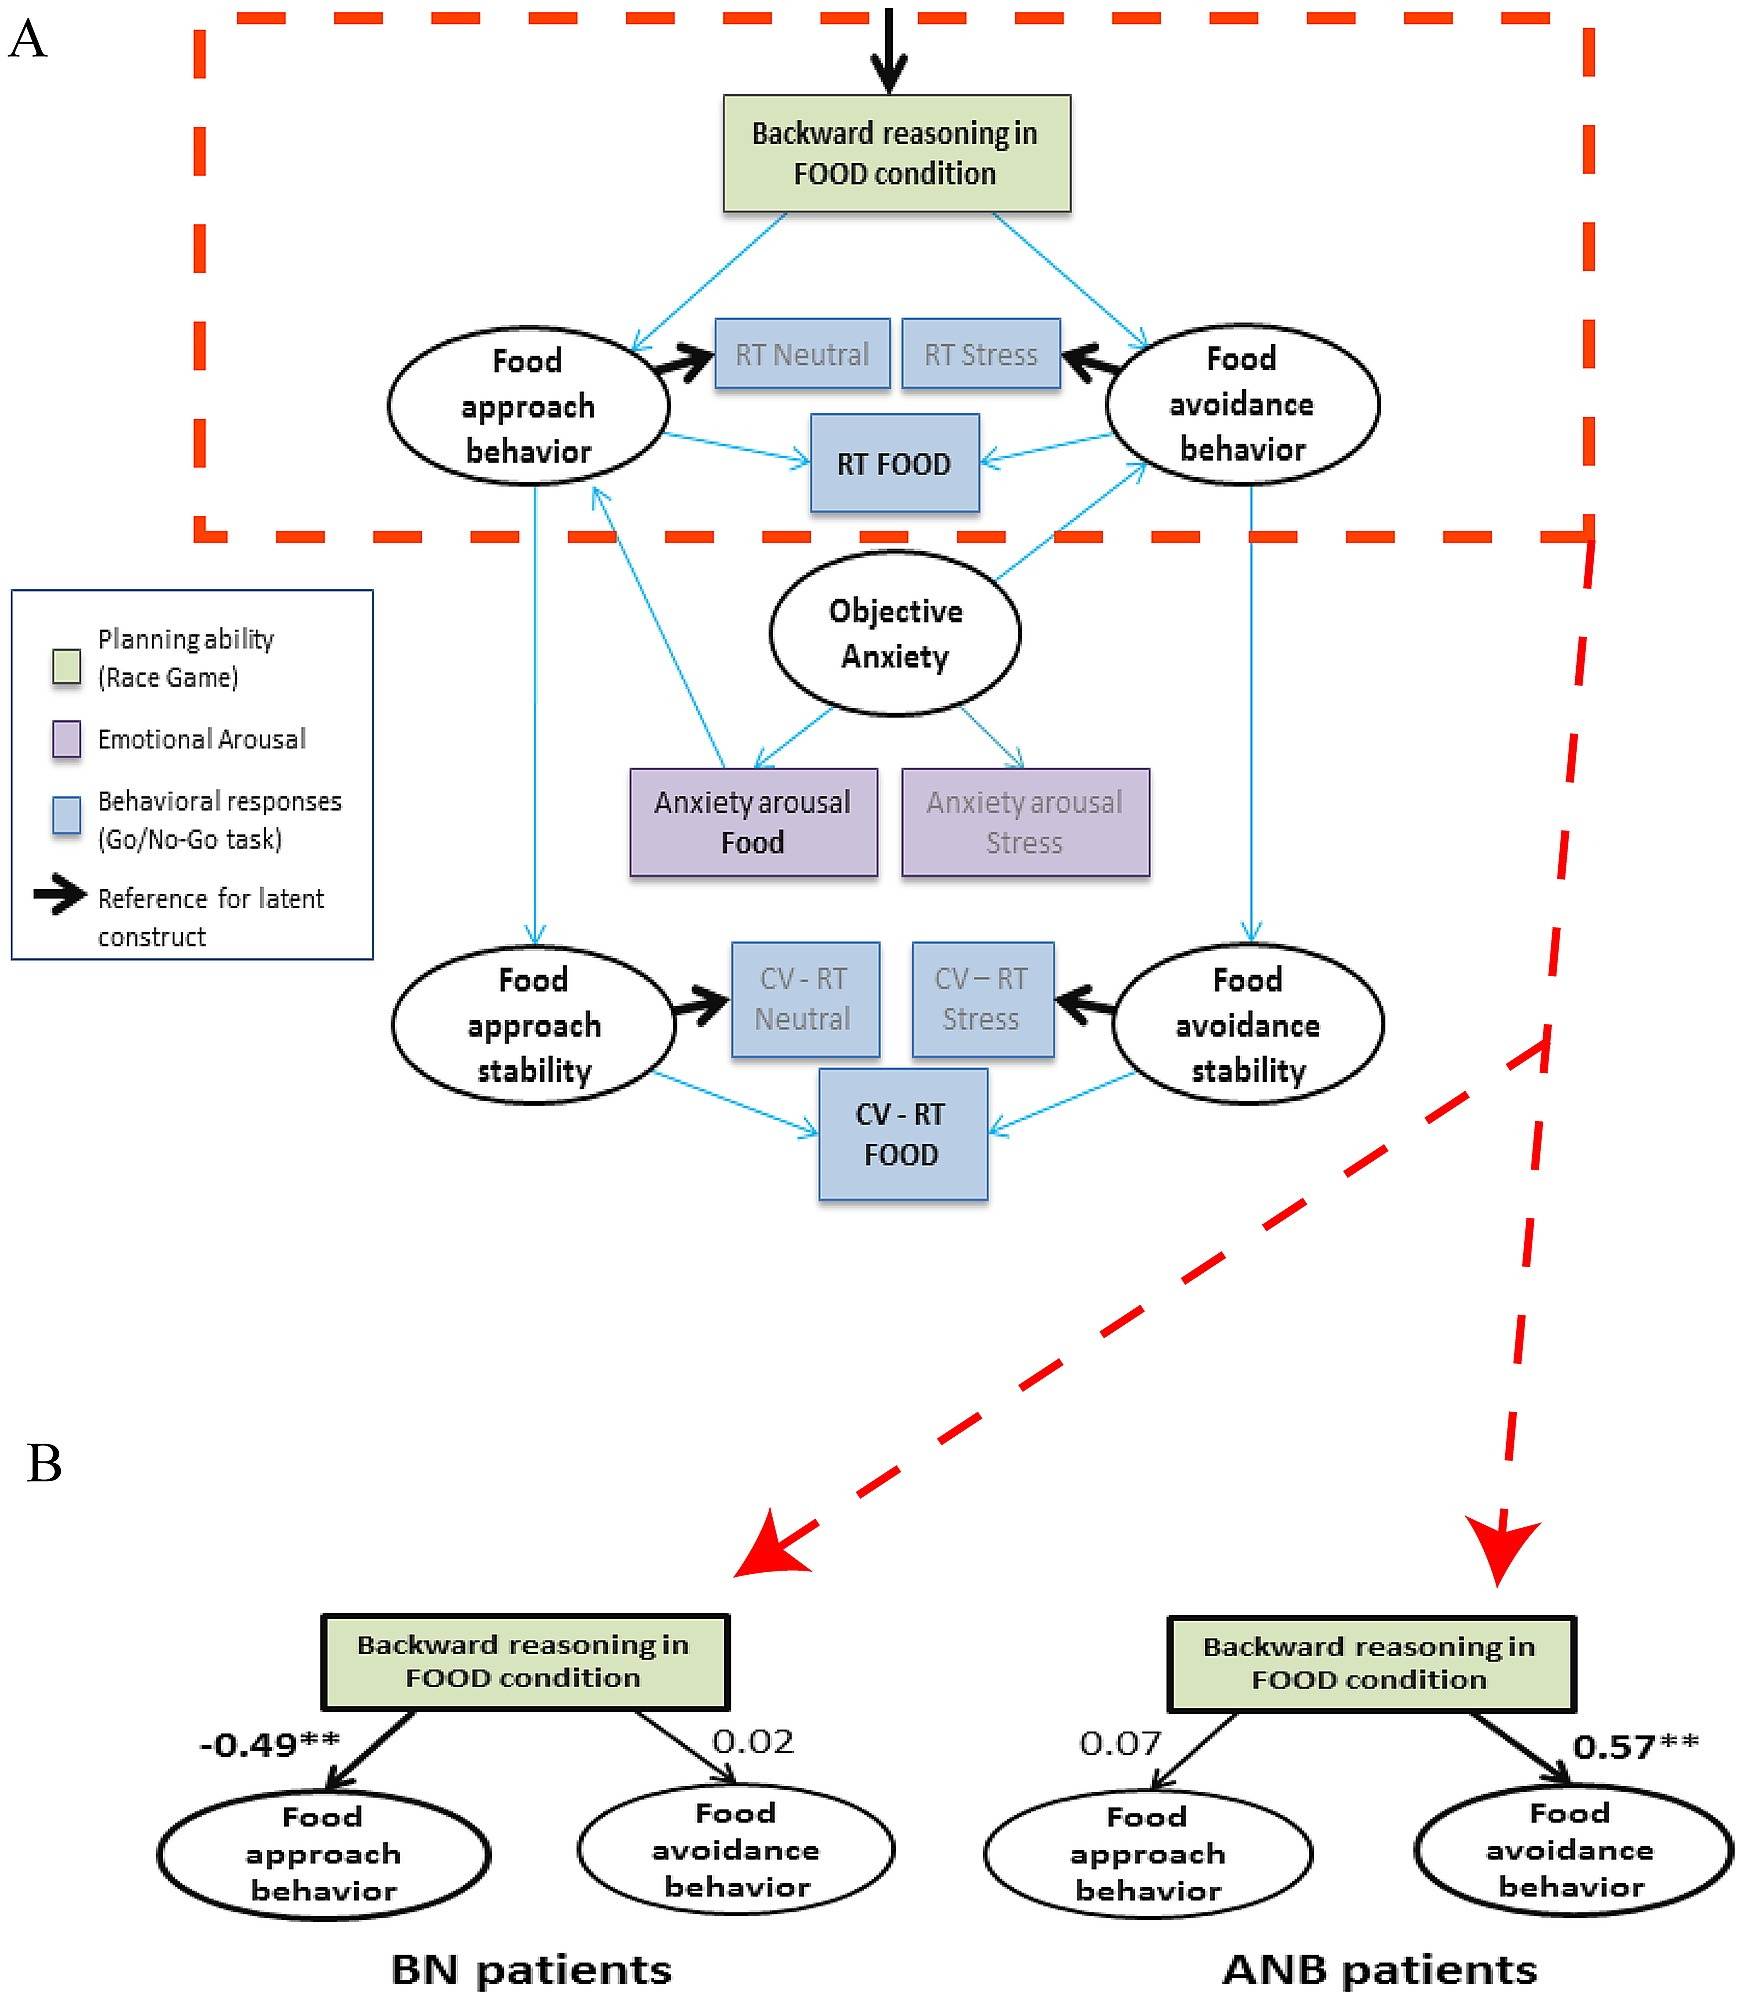 hight resolution of model used to investigate the association between backward reasoning in the race game in the food condition and approach or avoidance behaviors